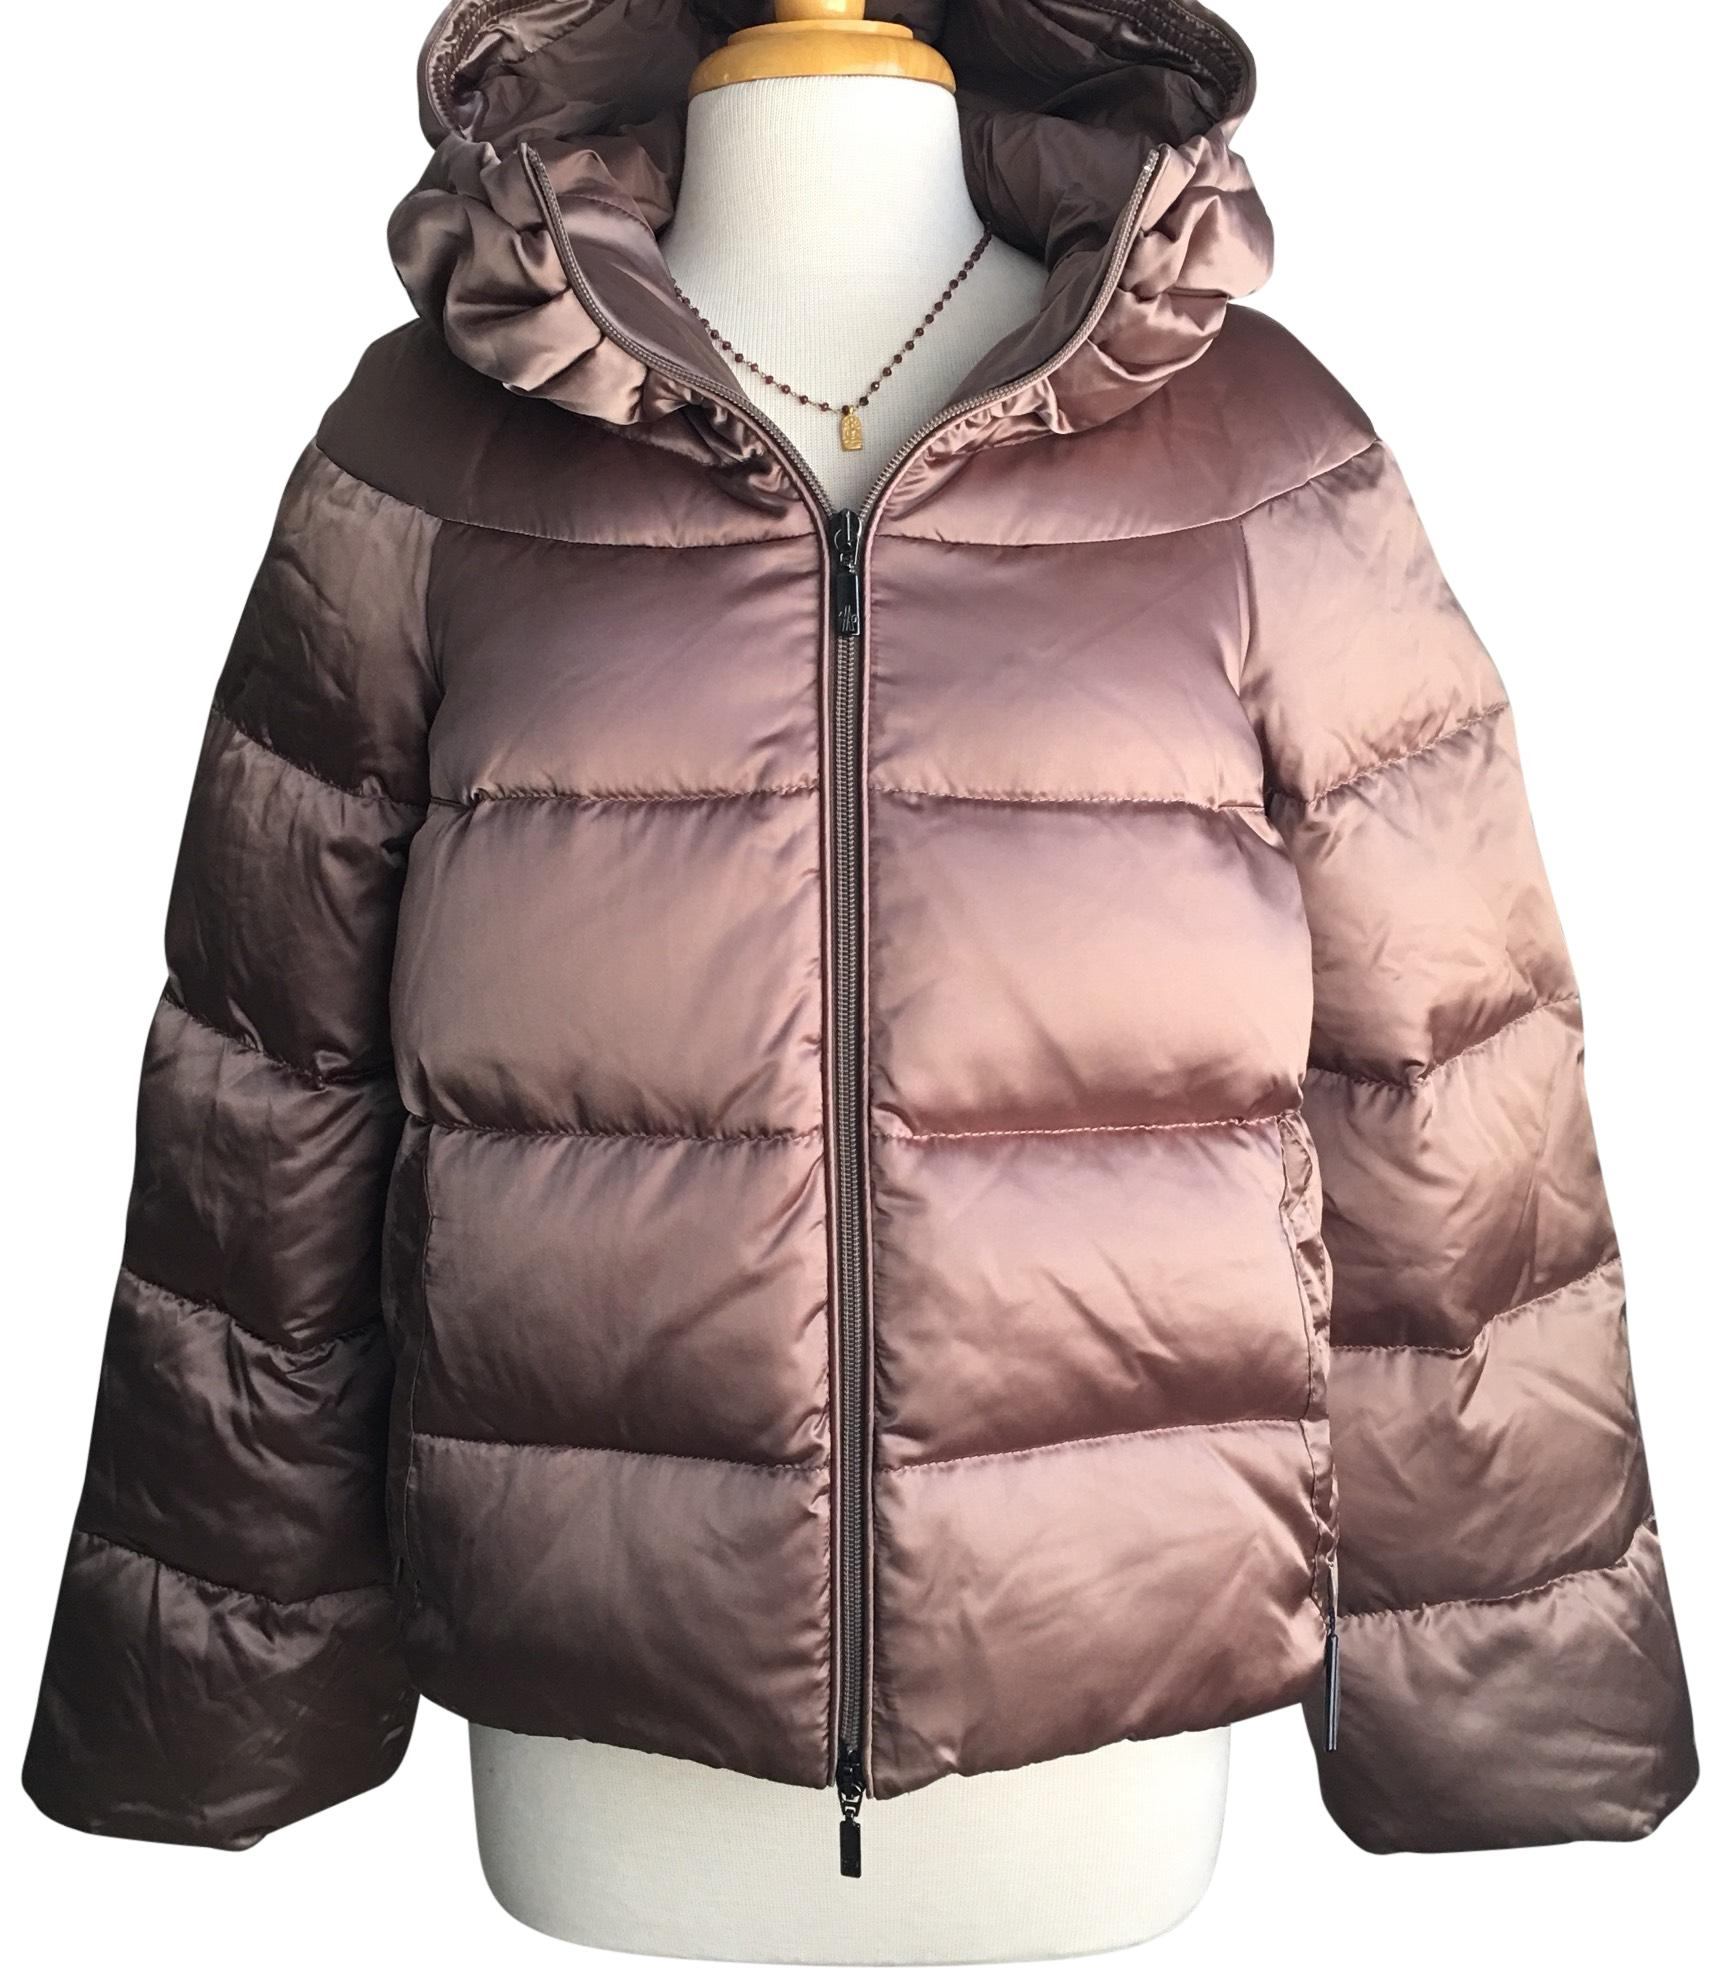 Moncler Down Down Jacket Puffer Luxury Coat ...